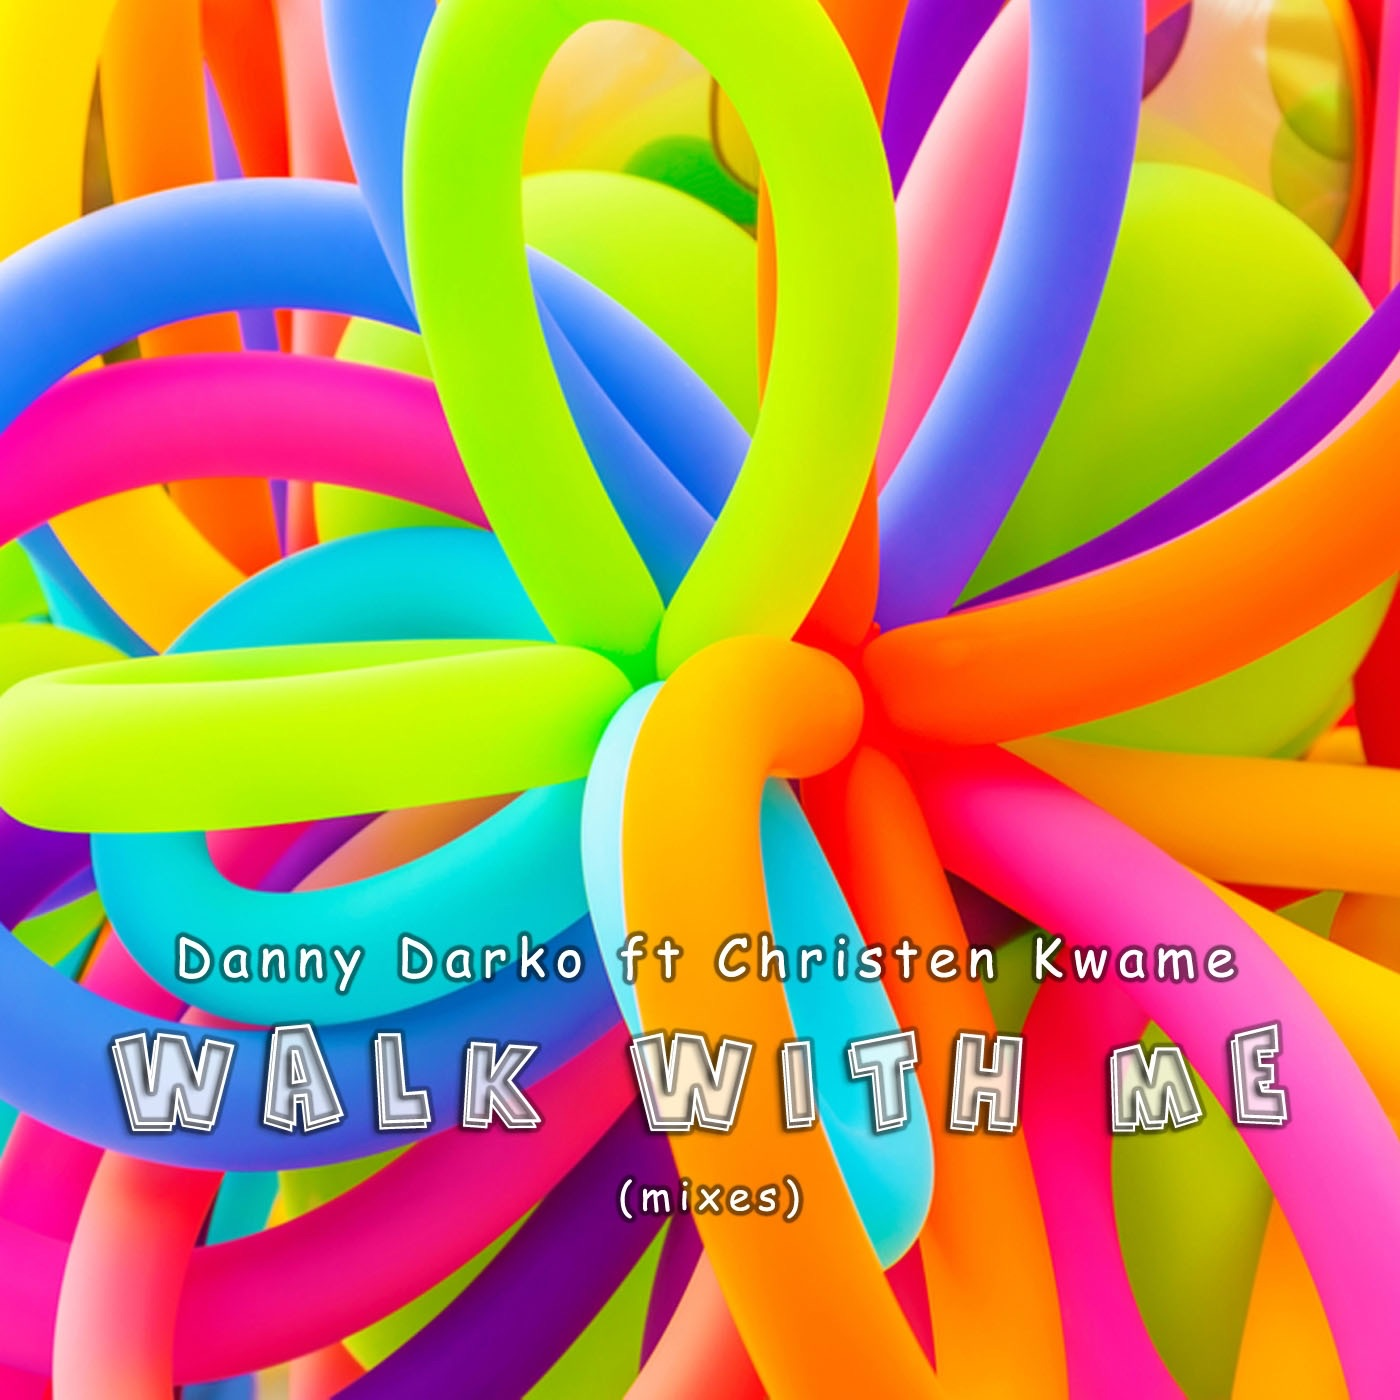 Walk With Me (Mixes) [feat. Christen Kwame]